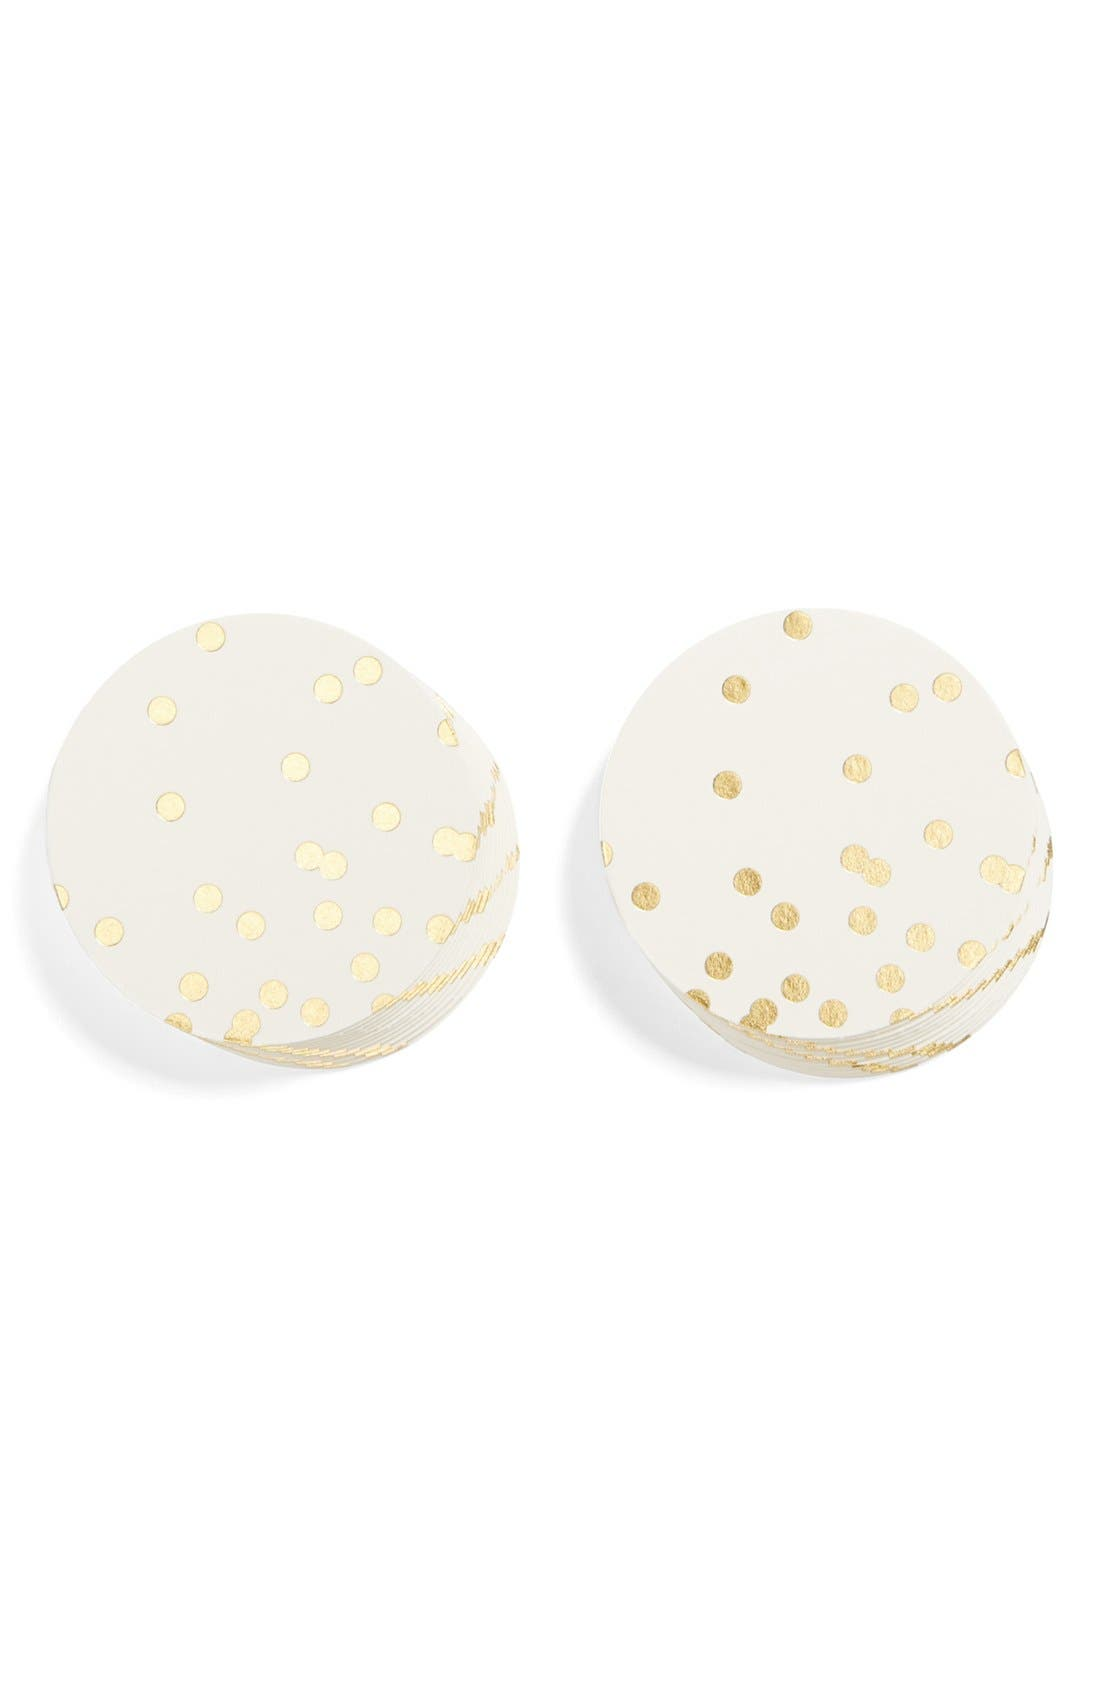 Alternate Image 1 Selected - kate spade new york party coasters (set of 24)